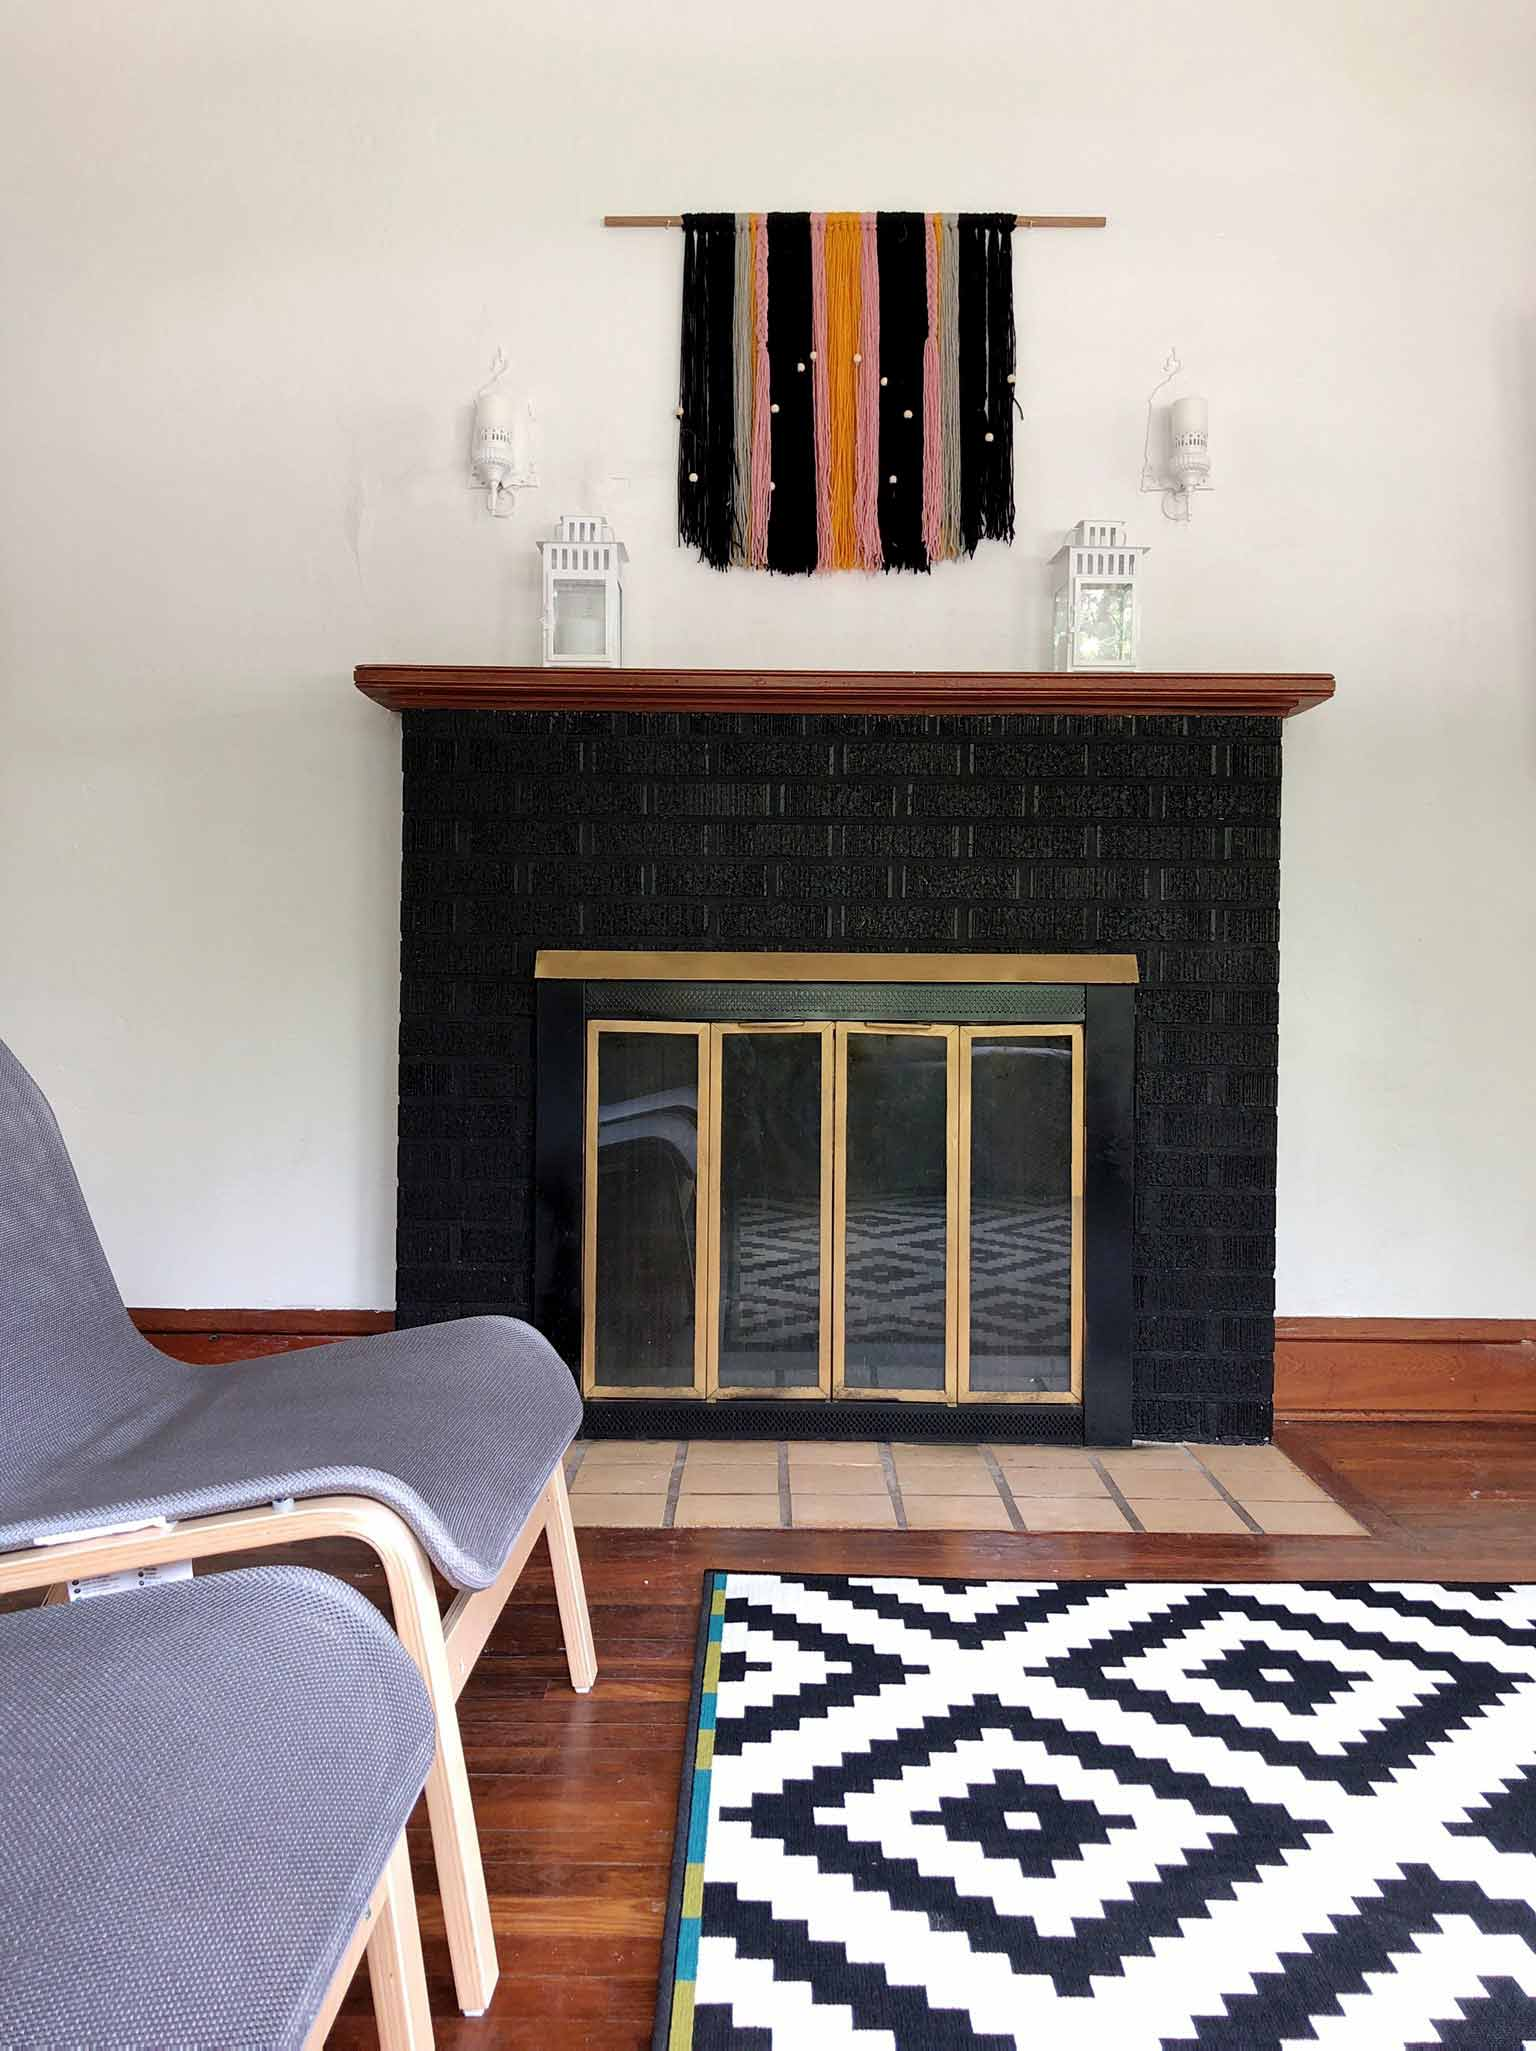 Painted brick fireplace - Modern minimalist room makeover on a budget - That Homebird Life Blog